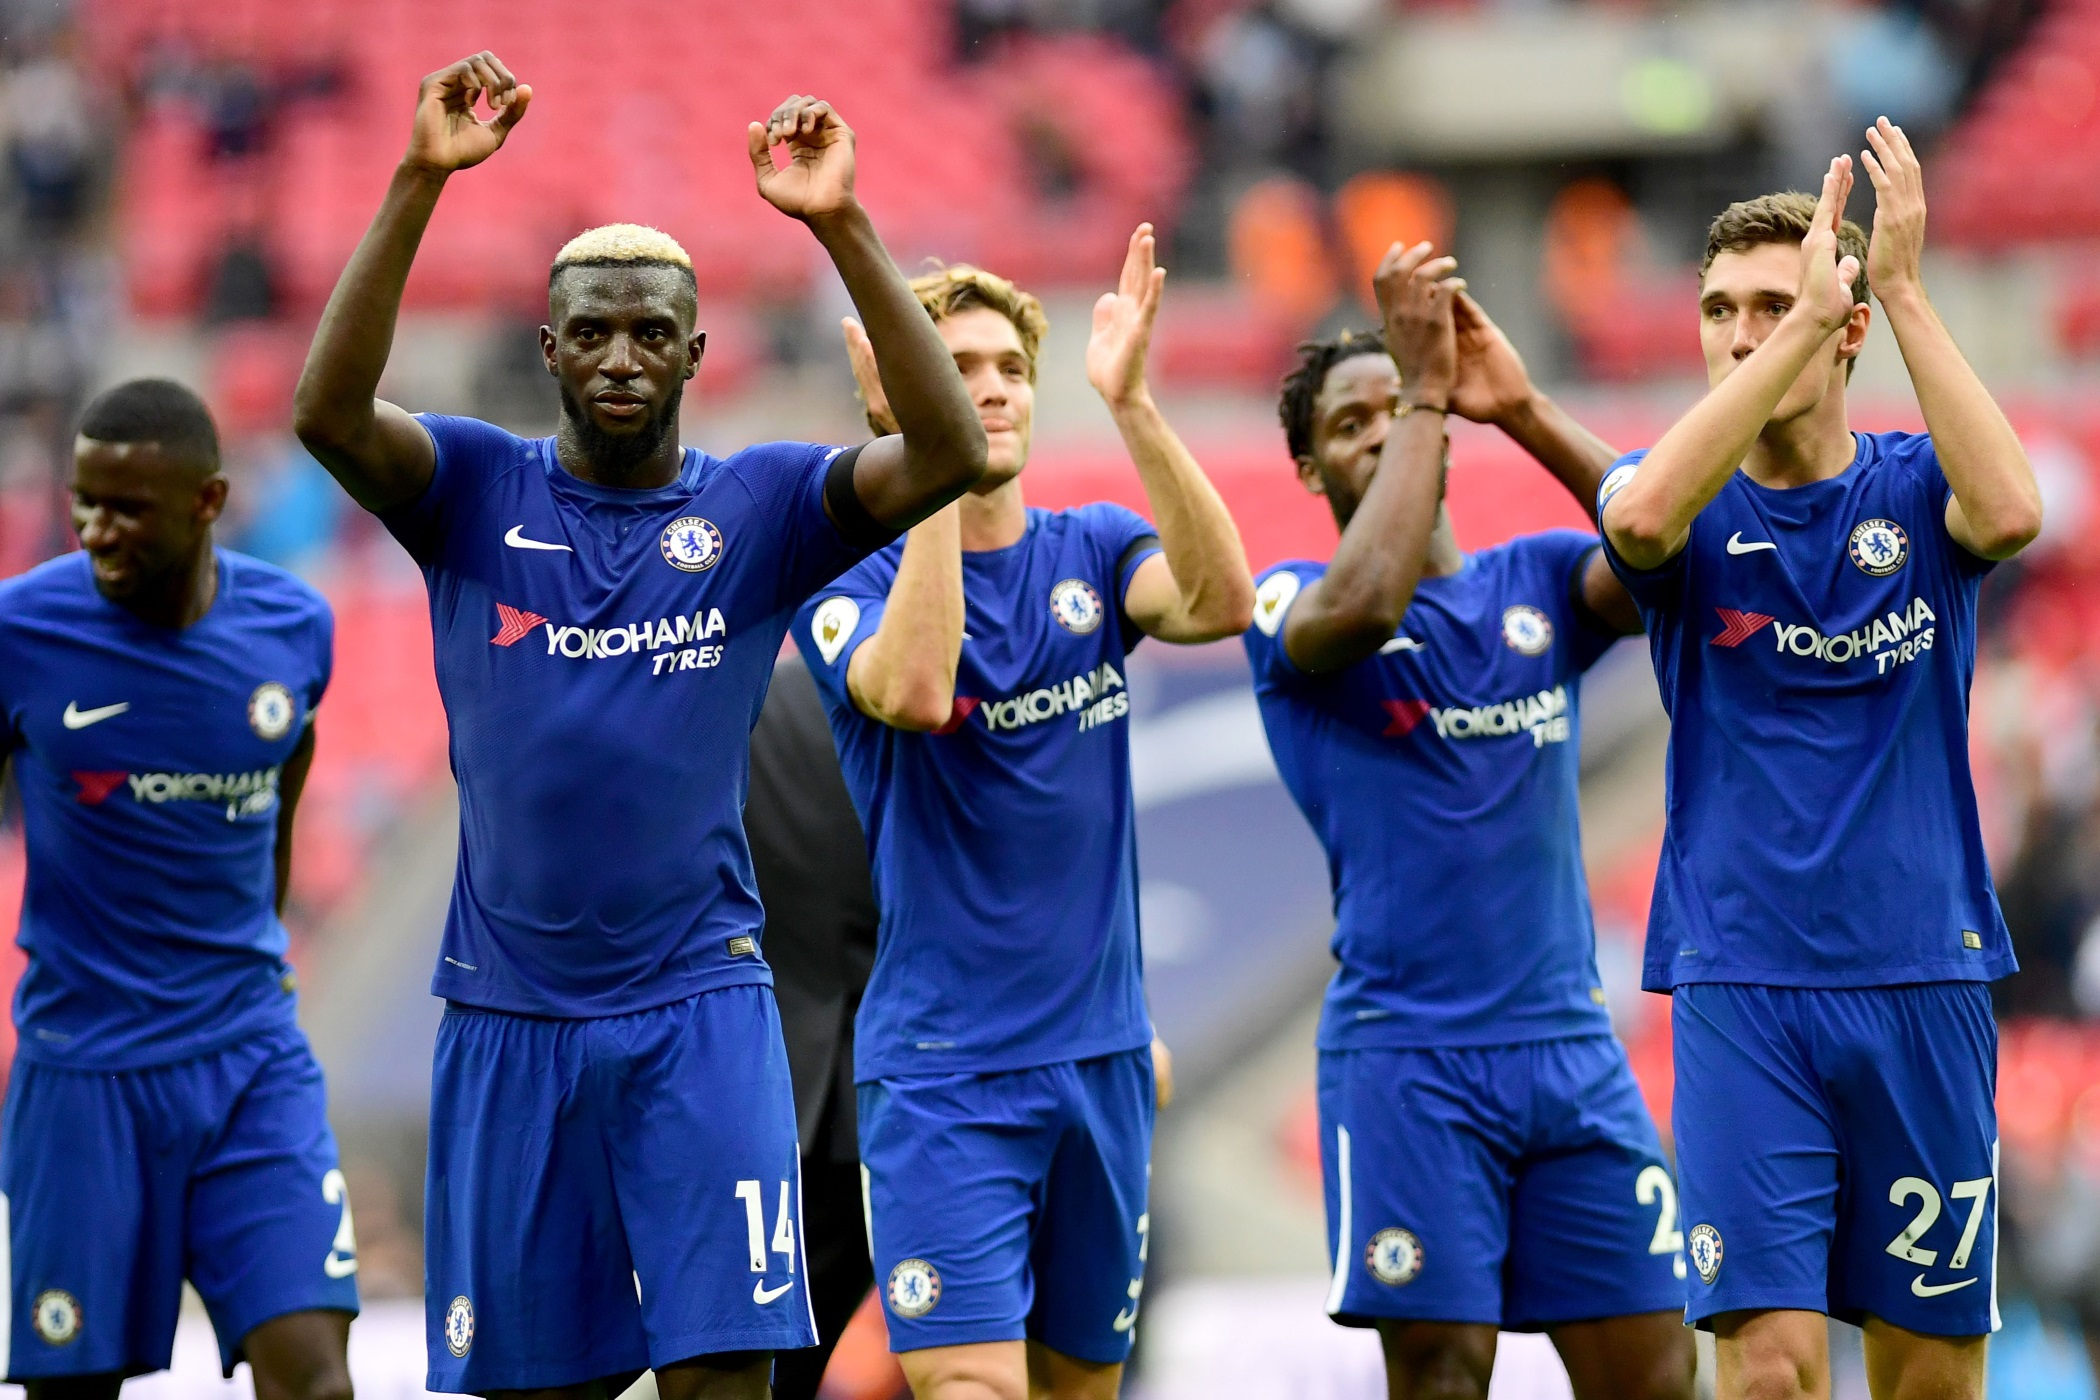 Yokohama-sponsored Chelsea FC Ready To Defend English Premier League Title